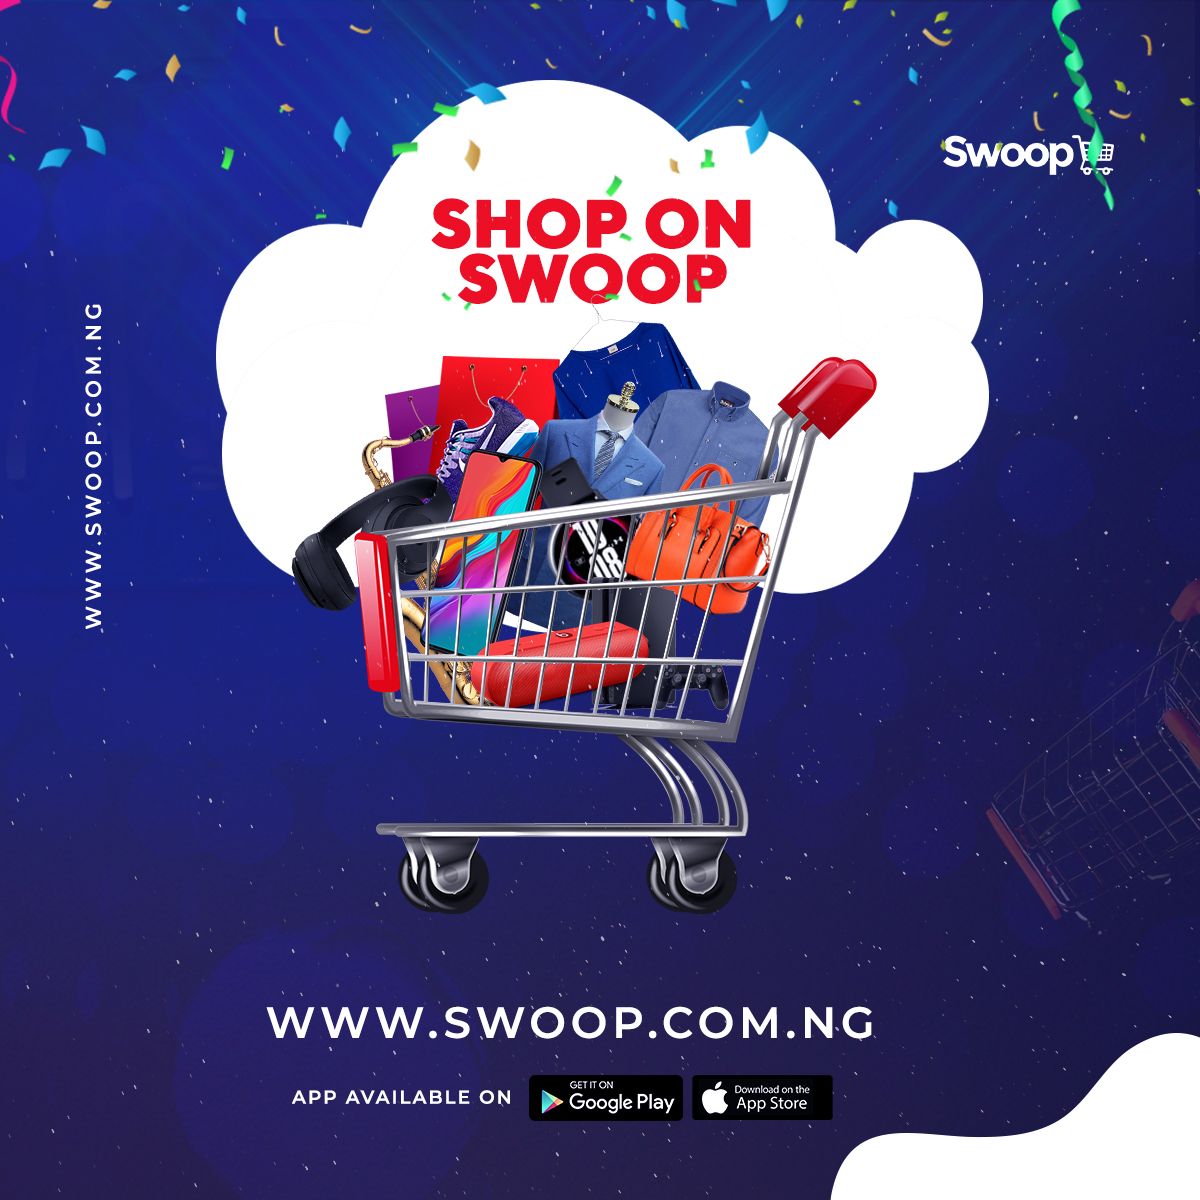 Swoop.. Where Shopping Is Made Fun